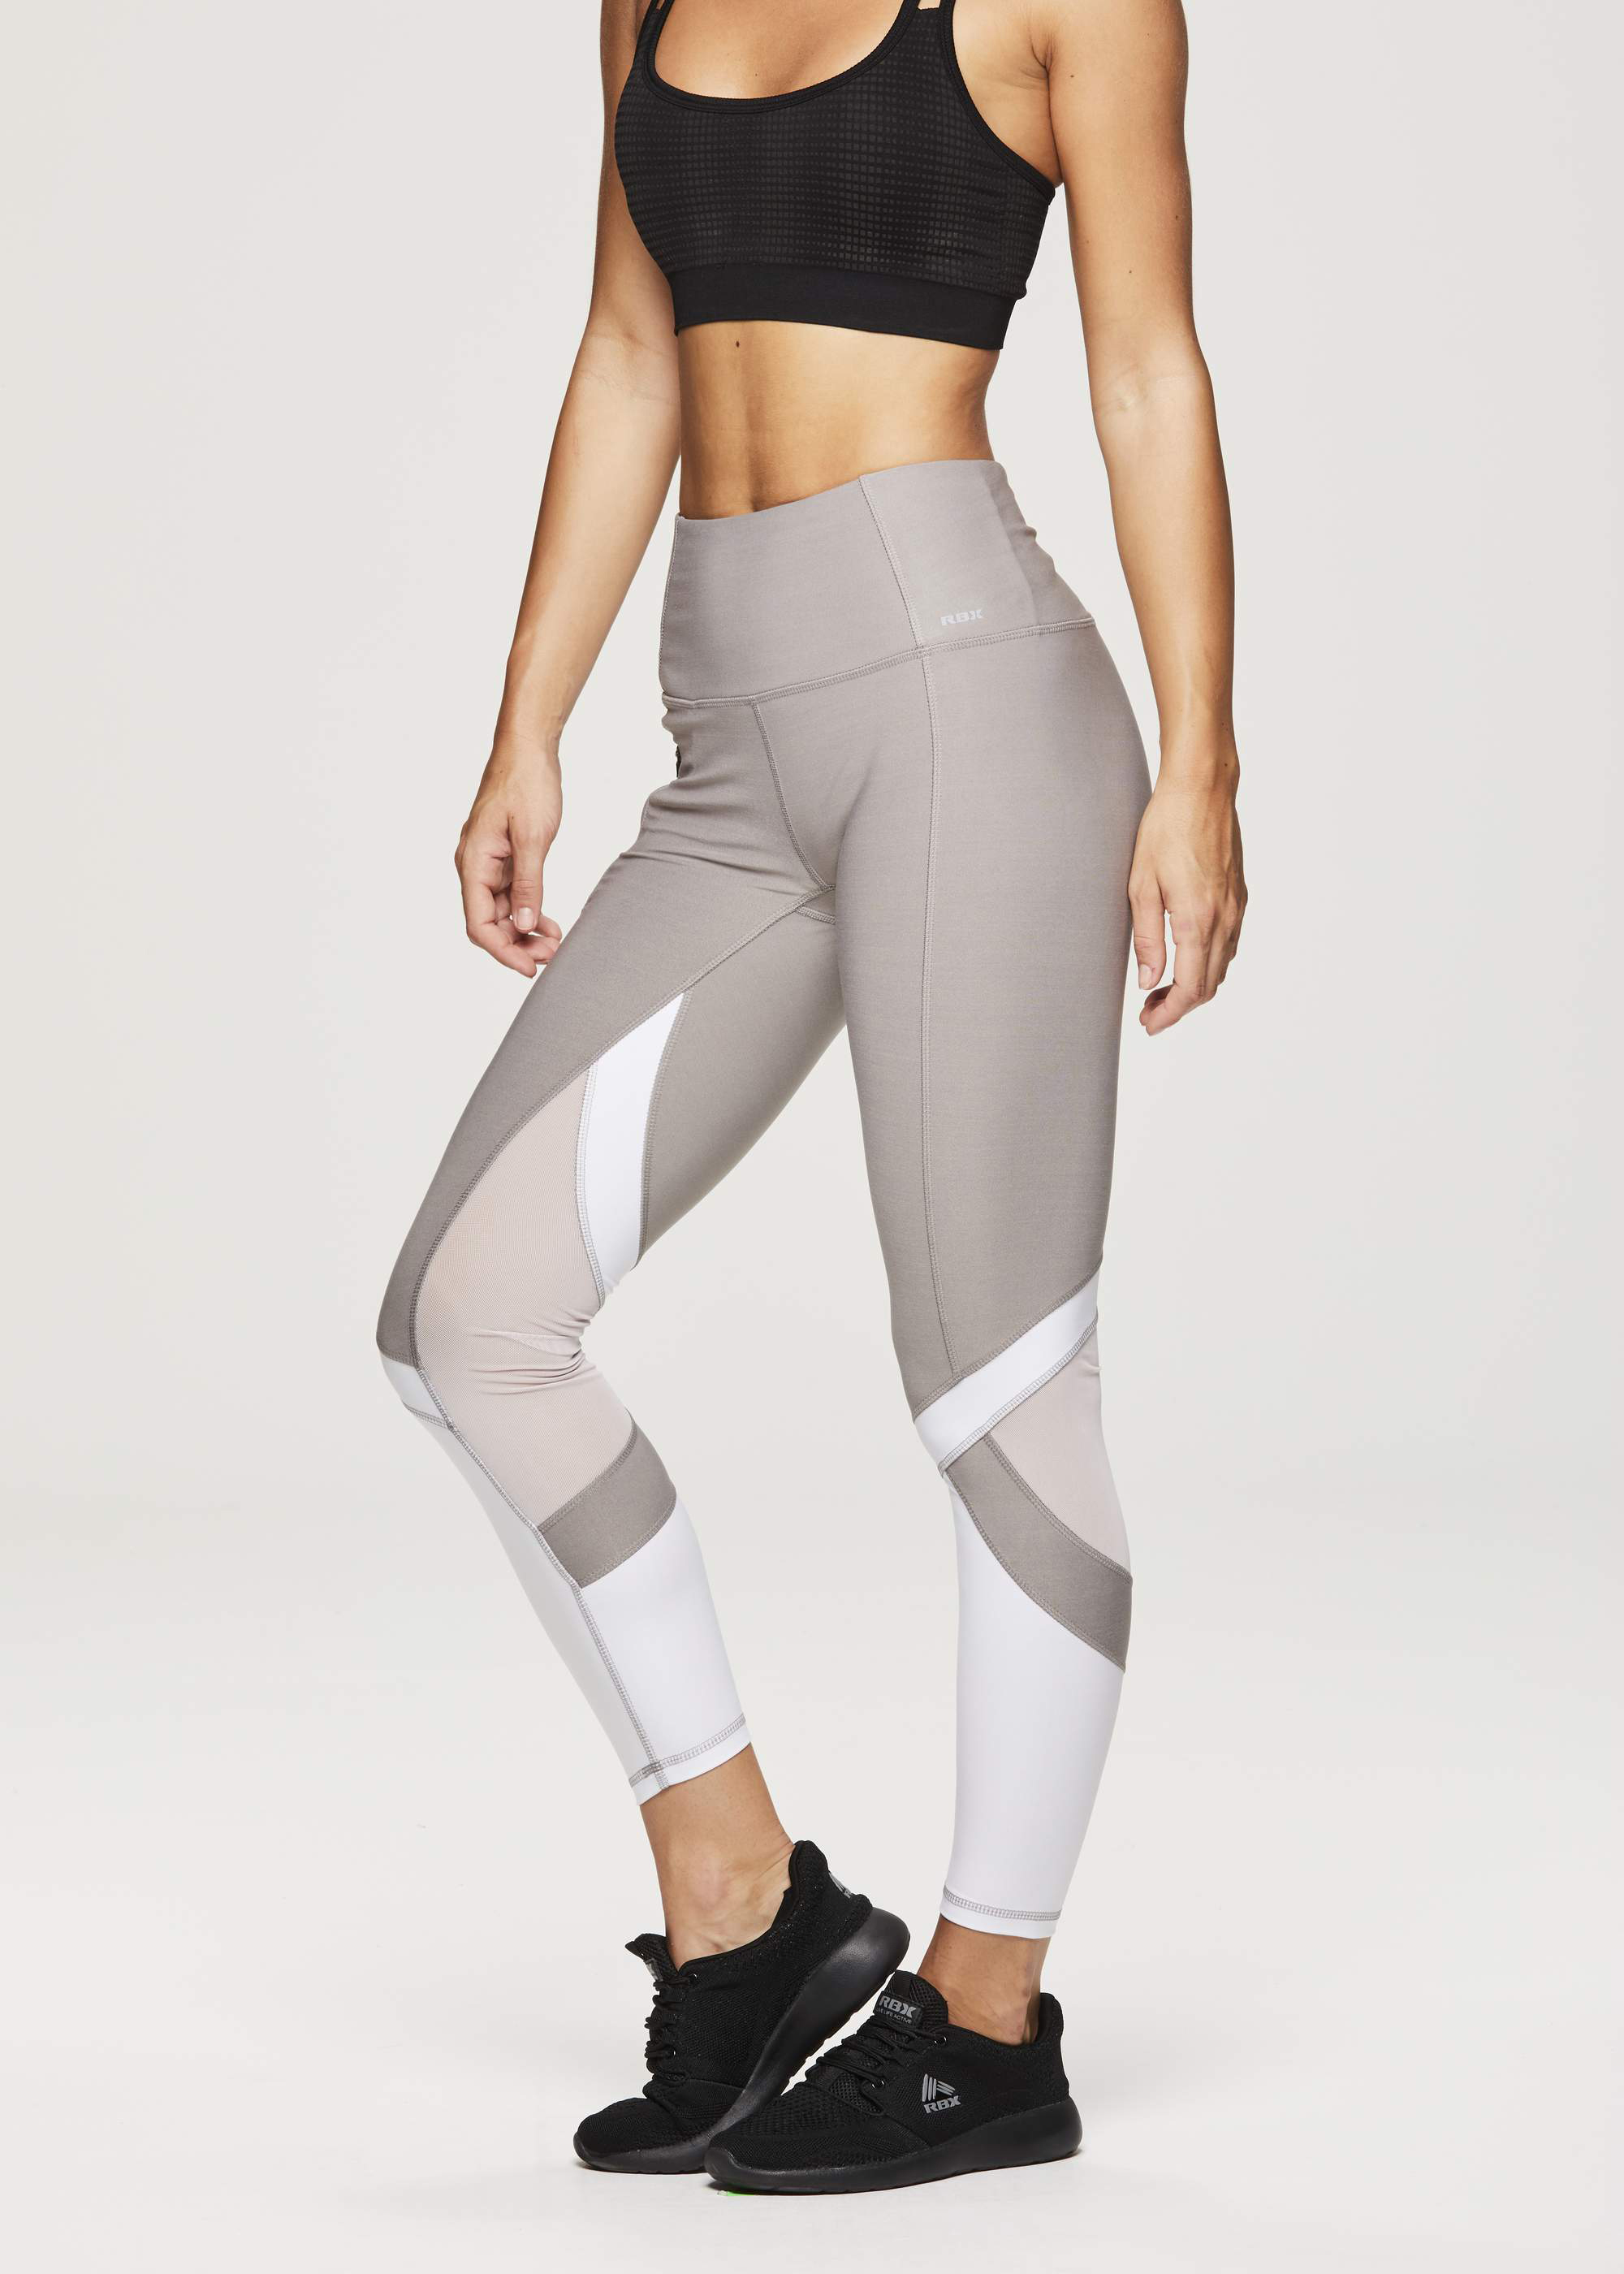 Women's Active 25 7/8 Colorblock and Mesh Legging